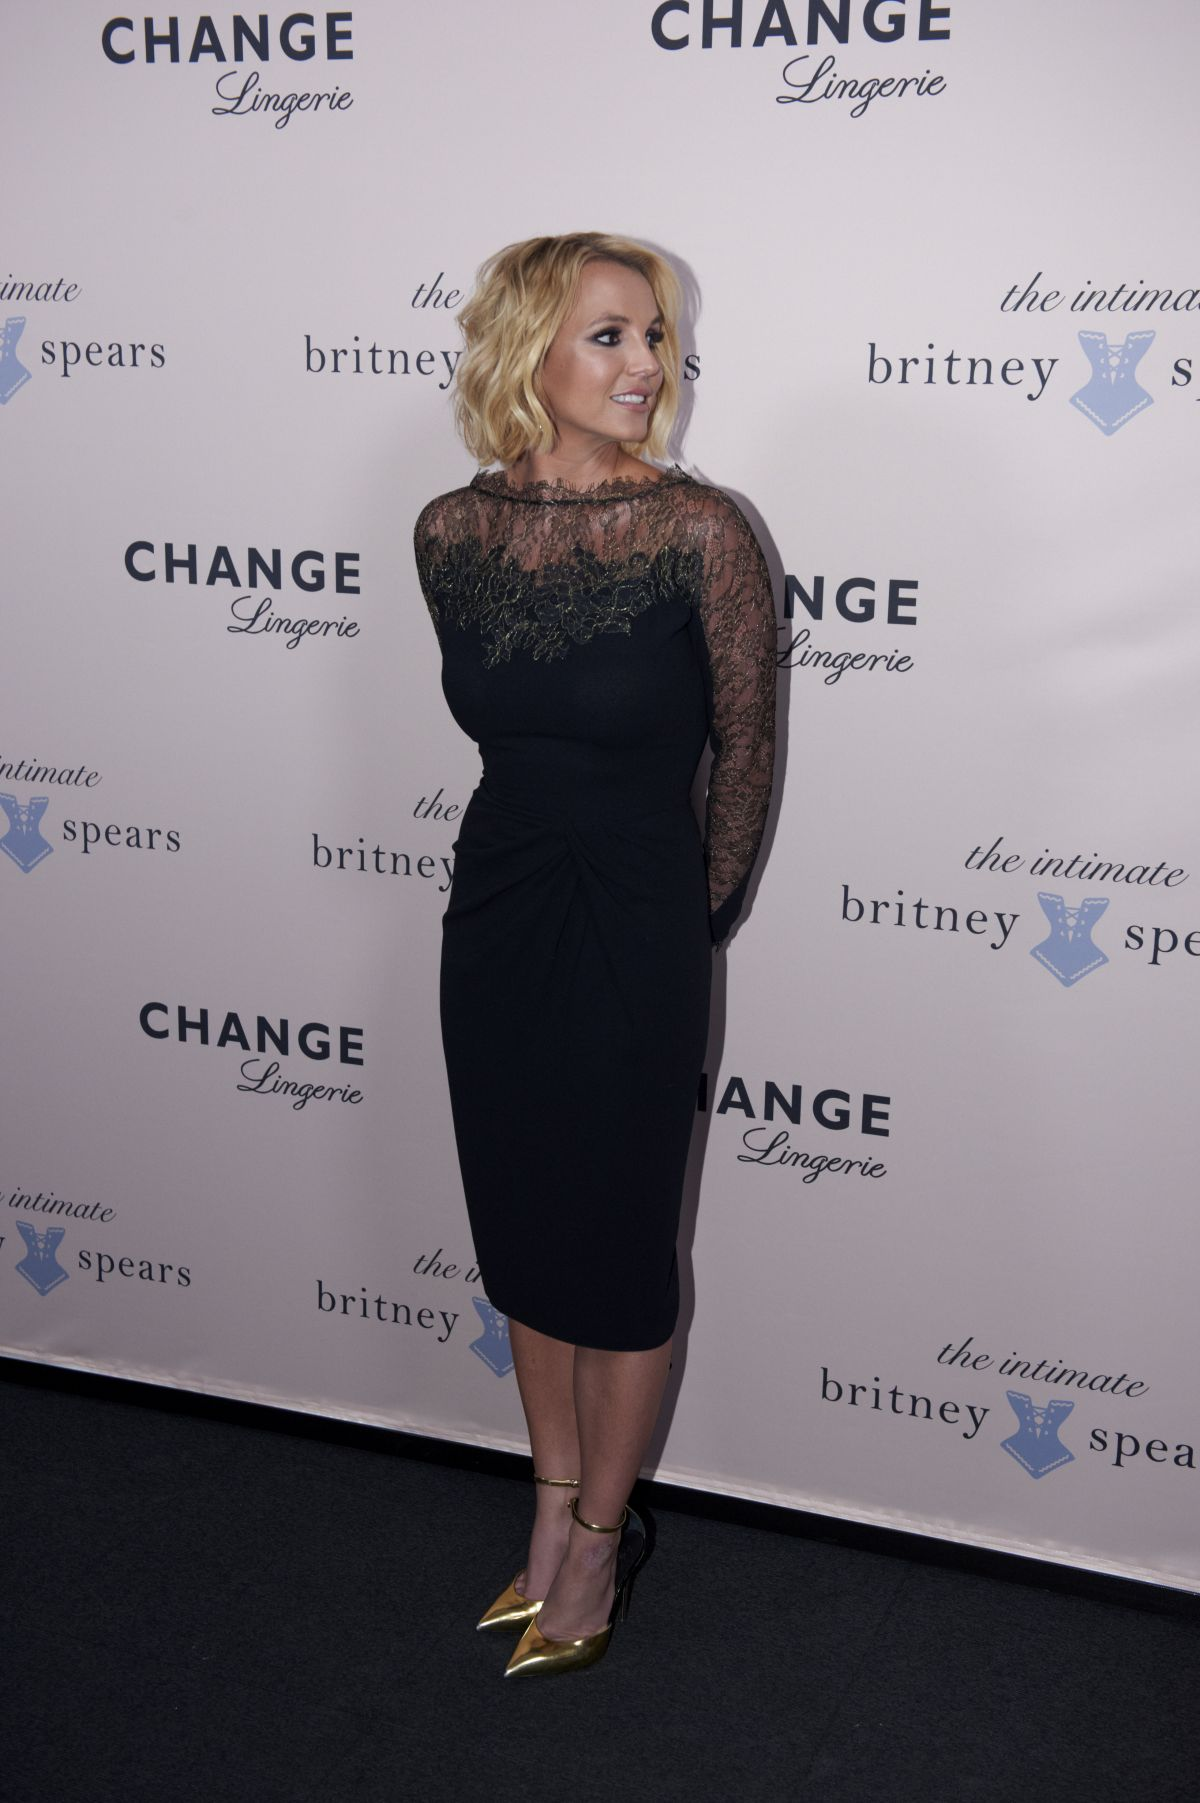 britney-spears-at-the-intimate-britney-s